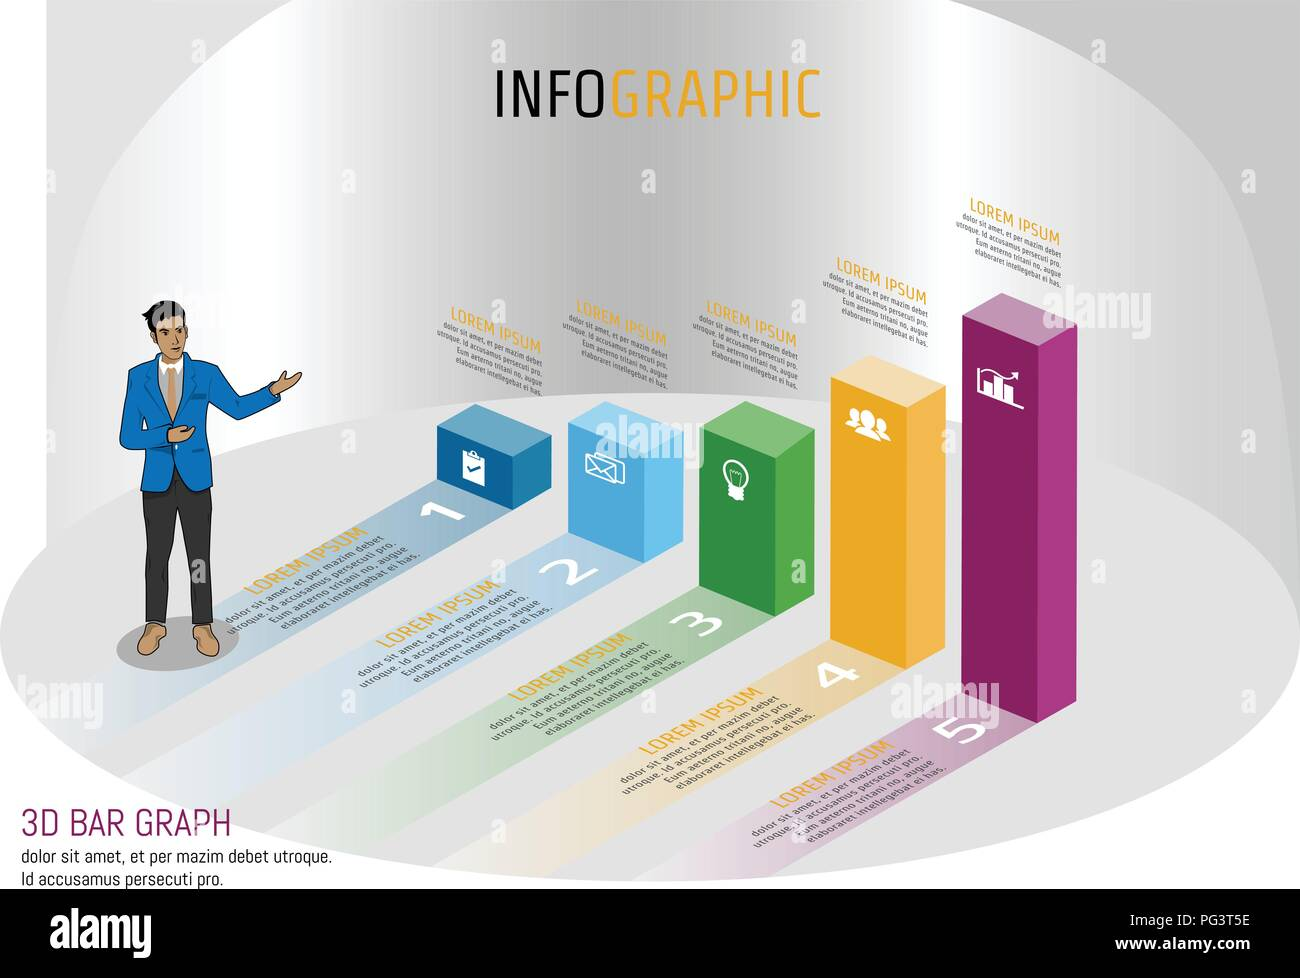 vector illustration infographic template in isomatic bar graph